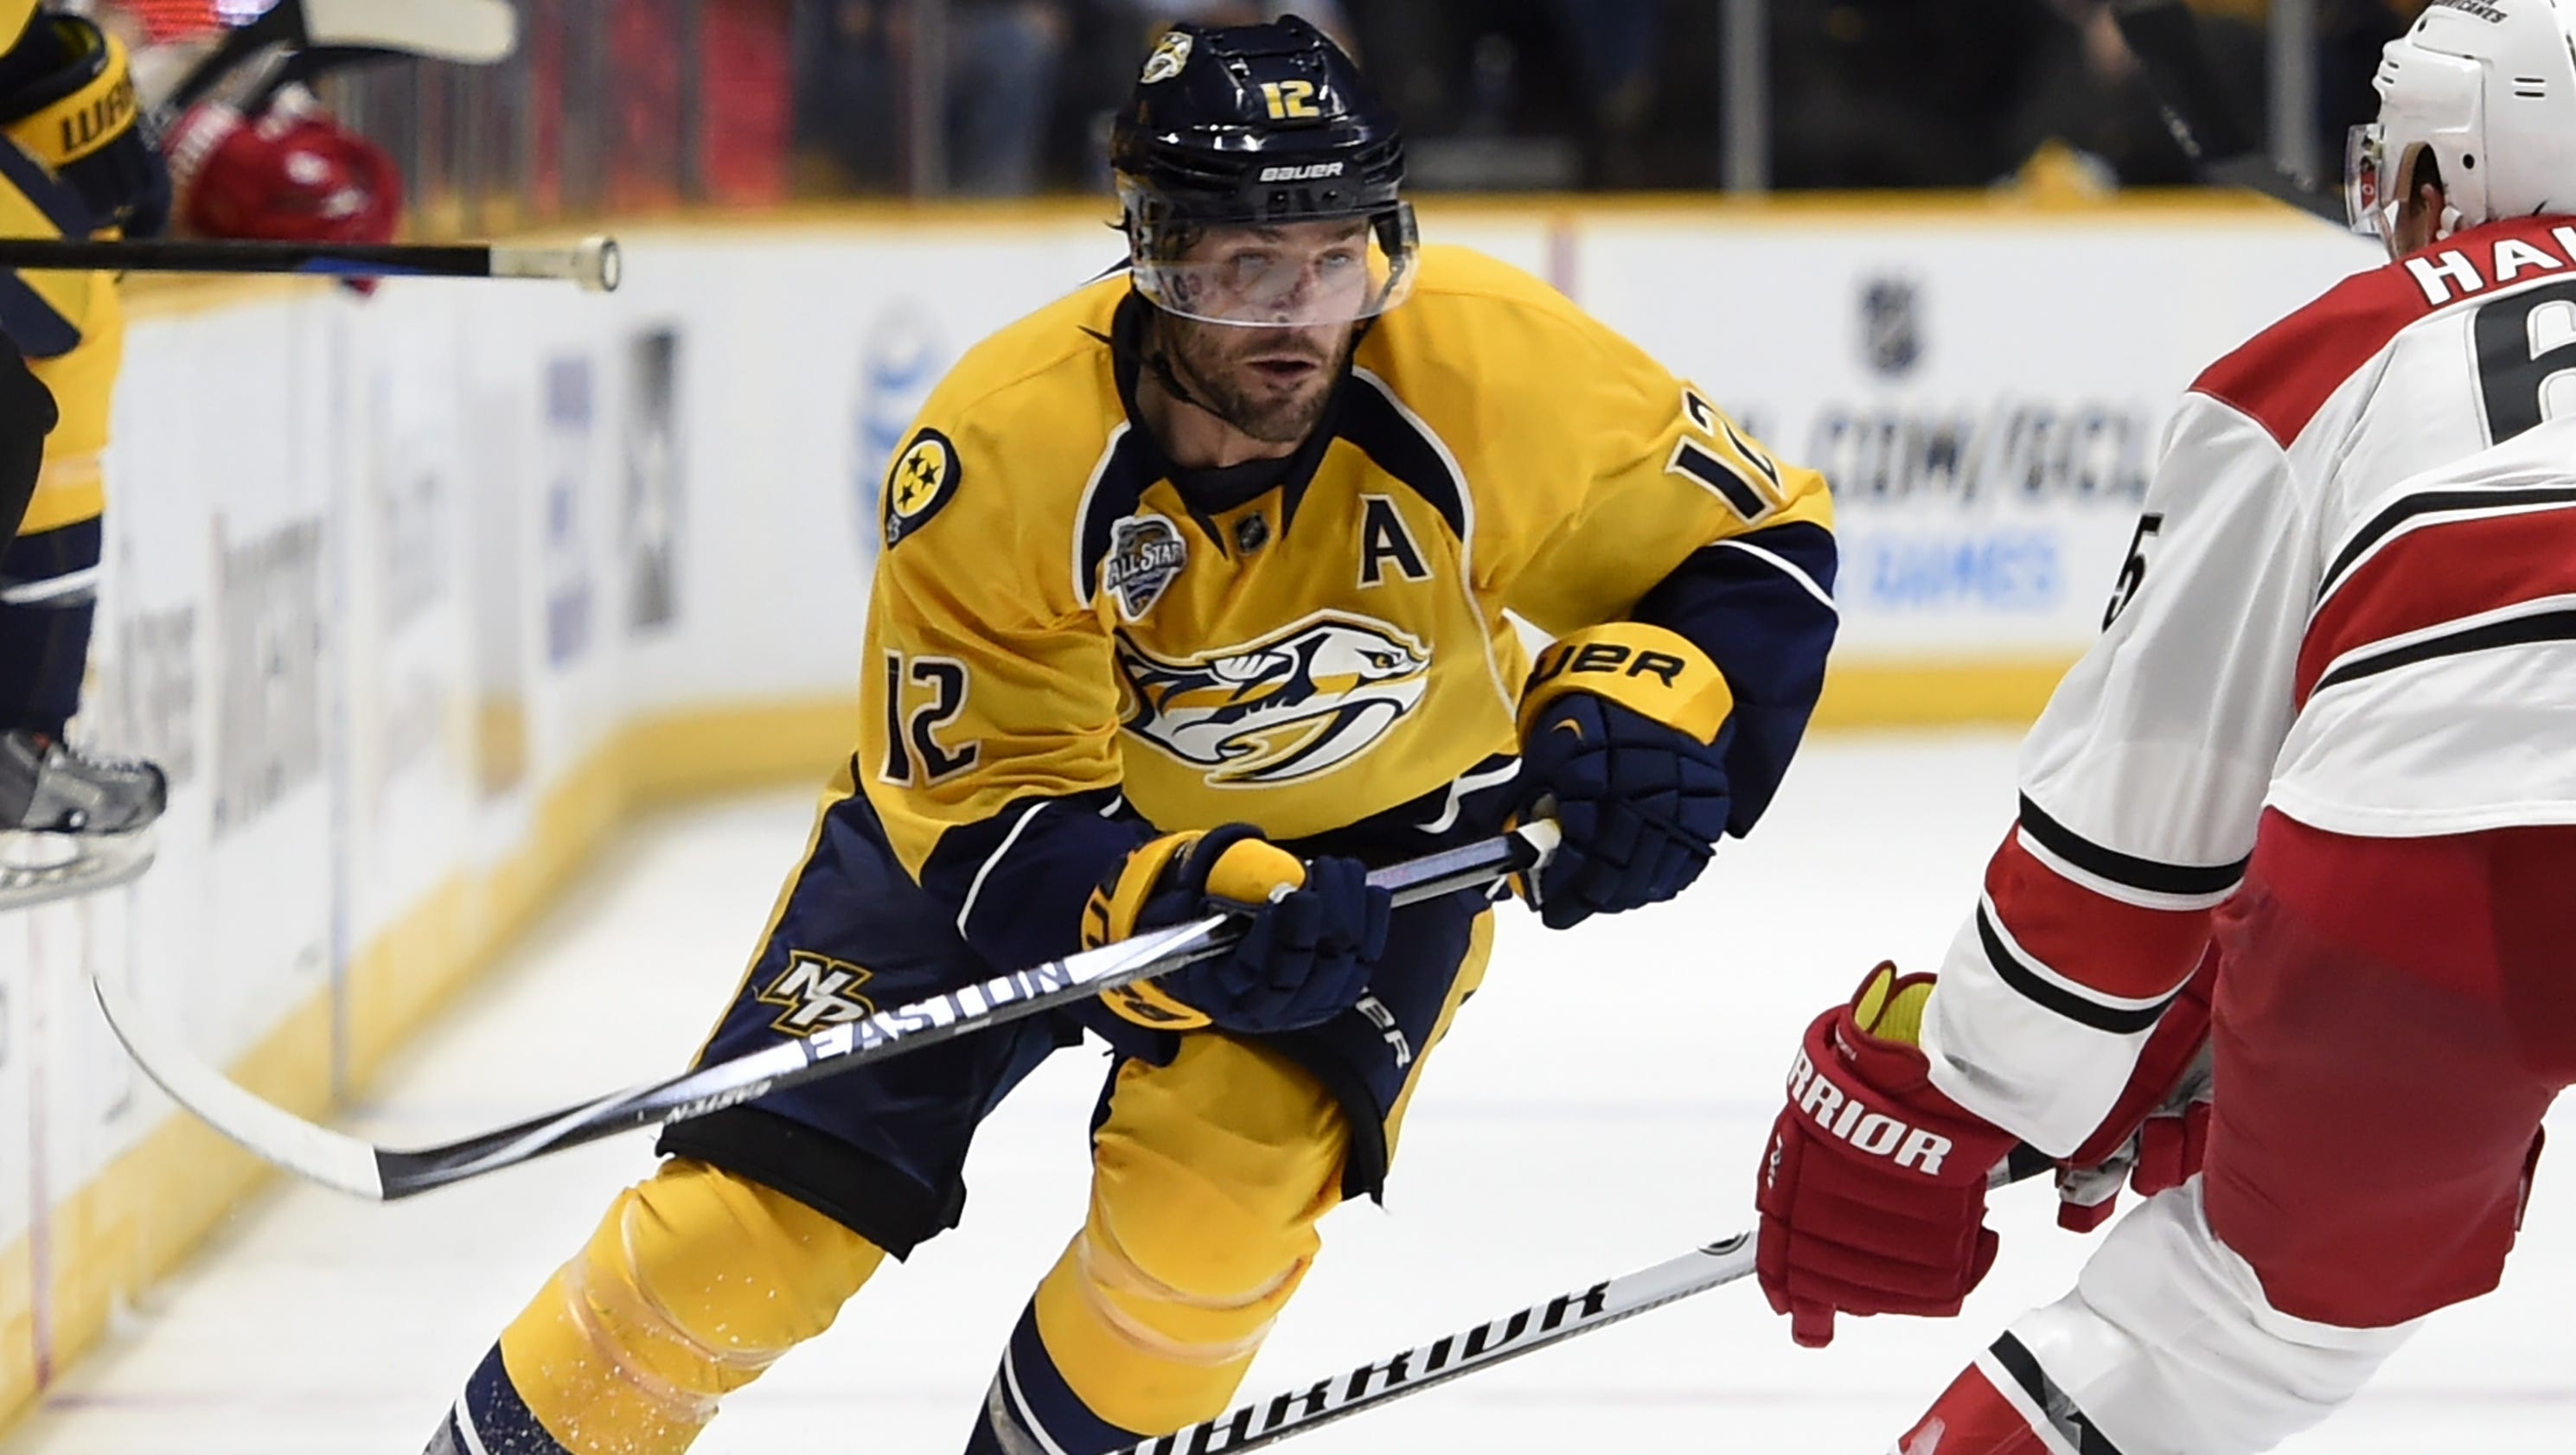 635846935991900026-nas-preds-season-game-1-021